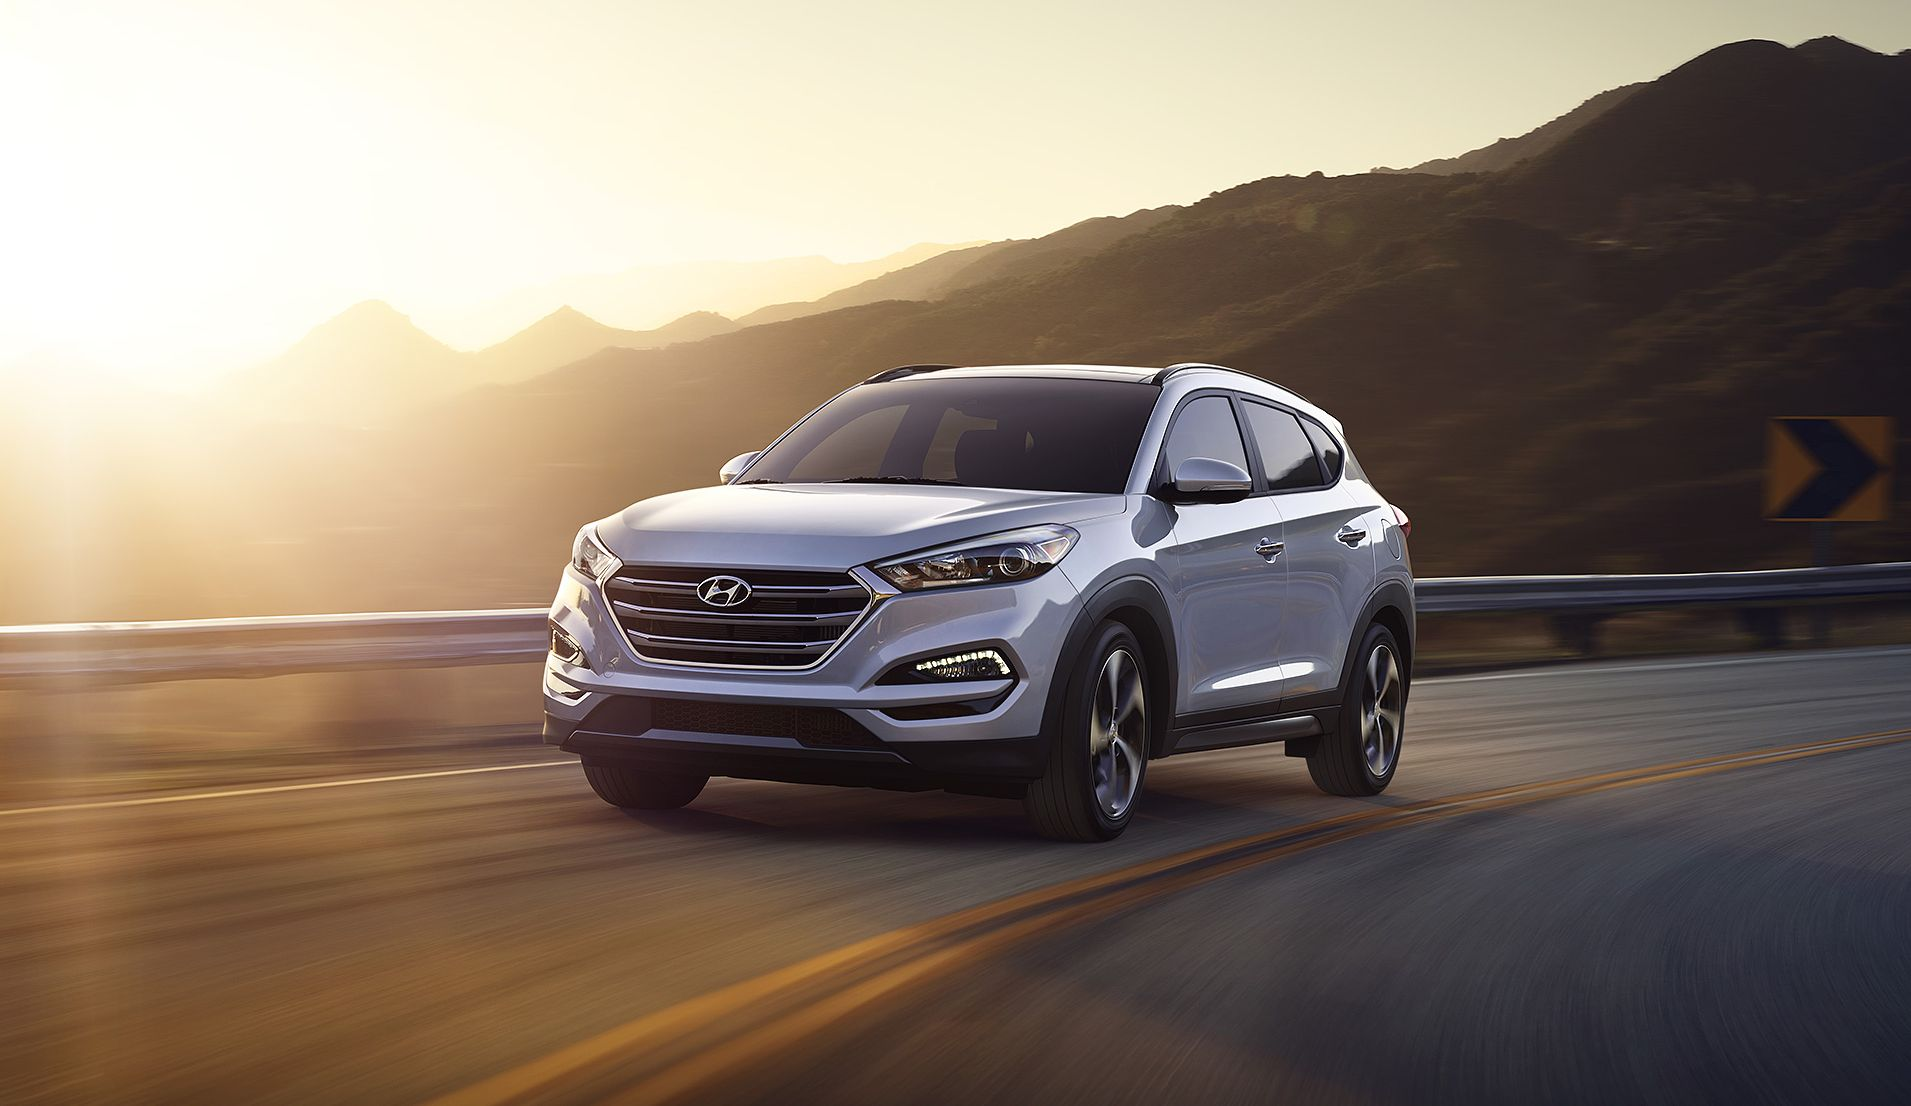 2017 Hyundai Tucson for Sale near Alexandria, VA